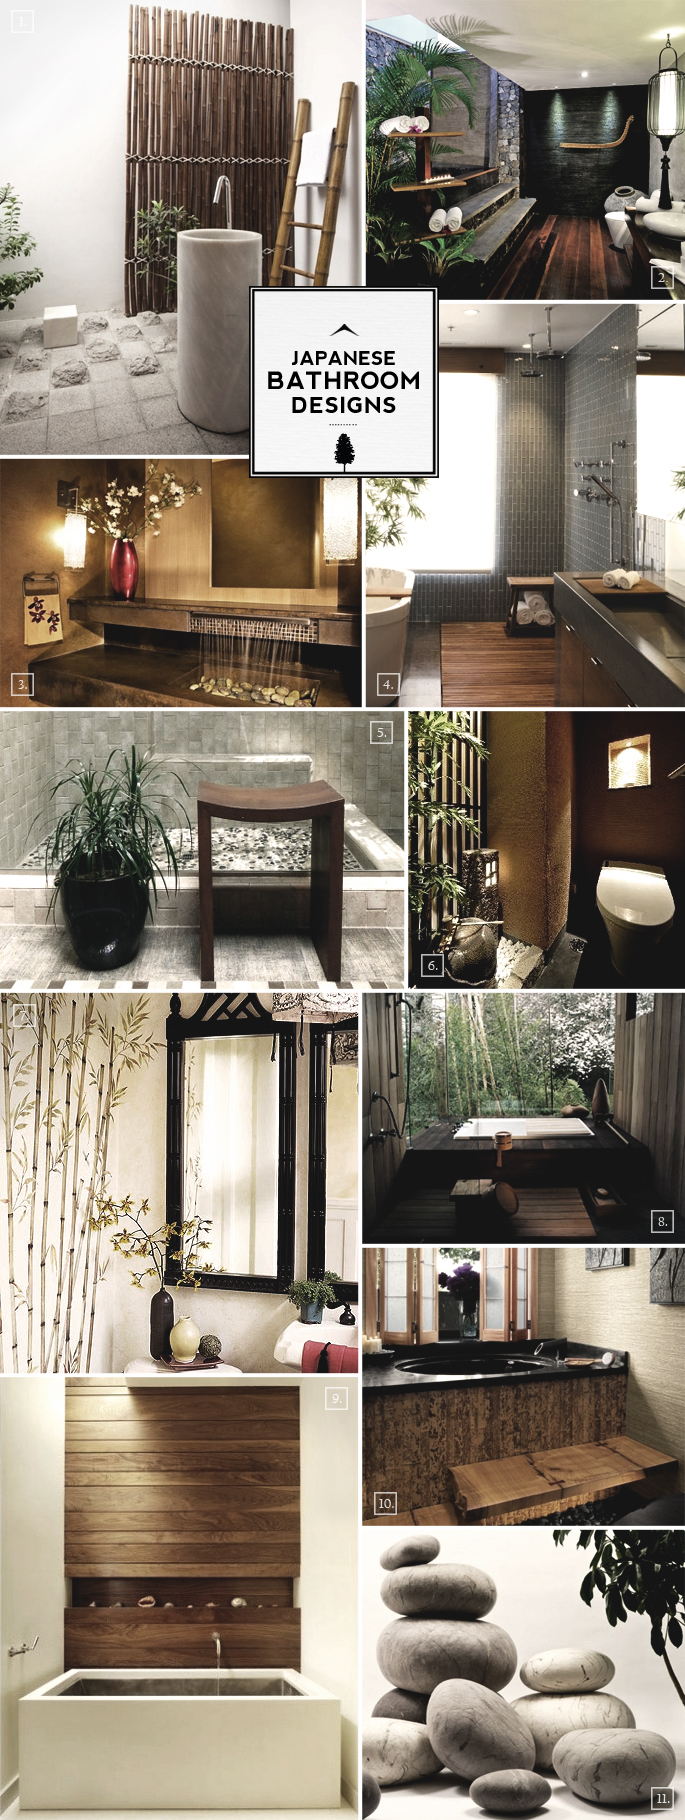 Zen Style: Japanese Bathroom Design Ideas | Home Tree Atlas